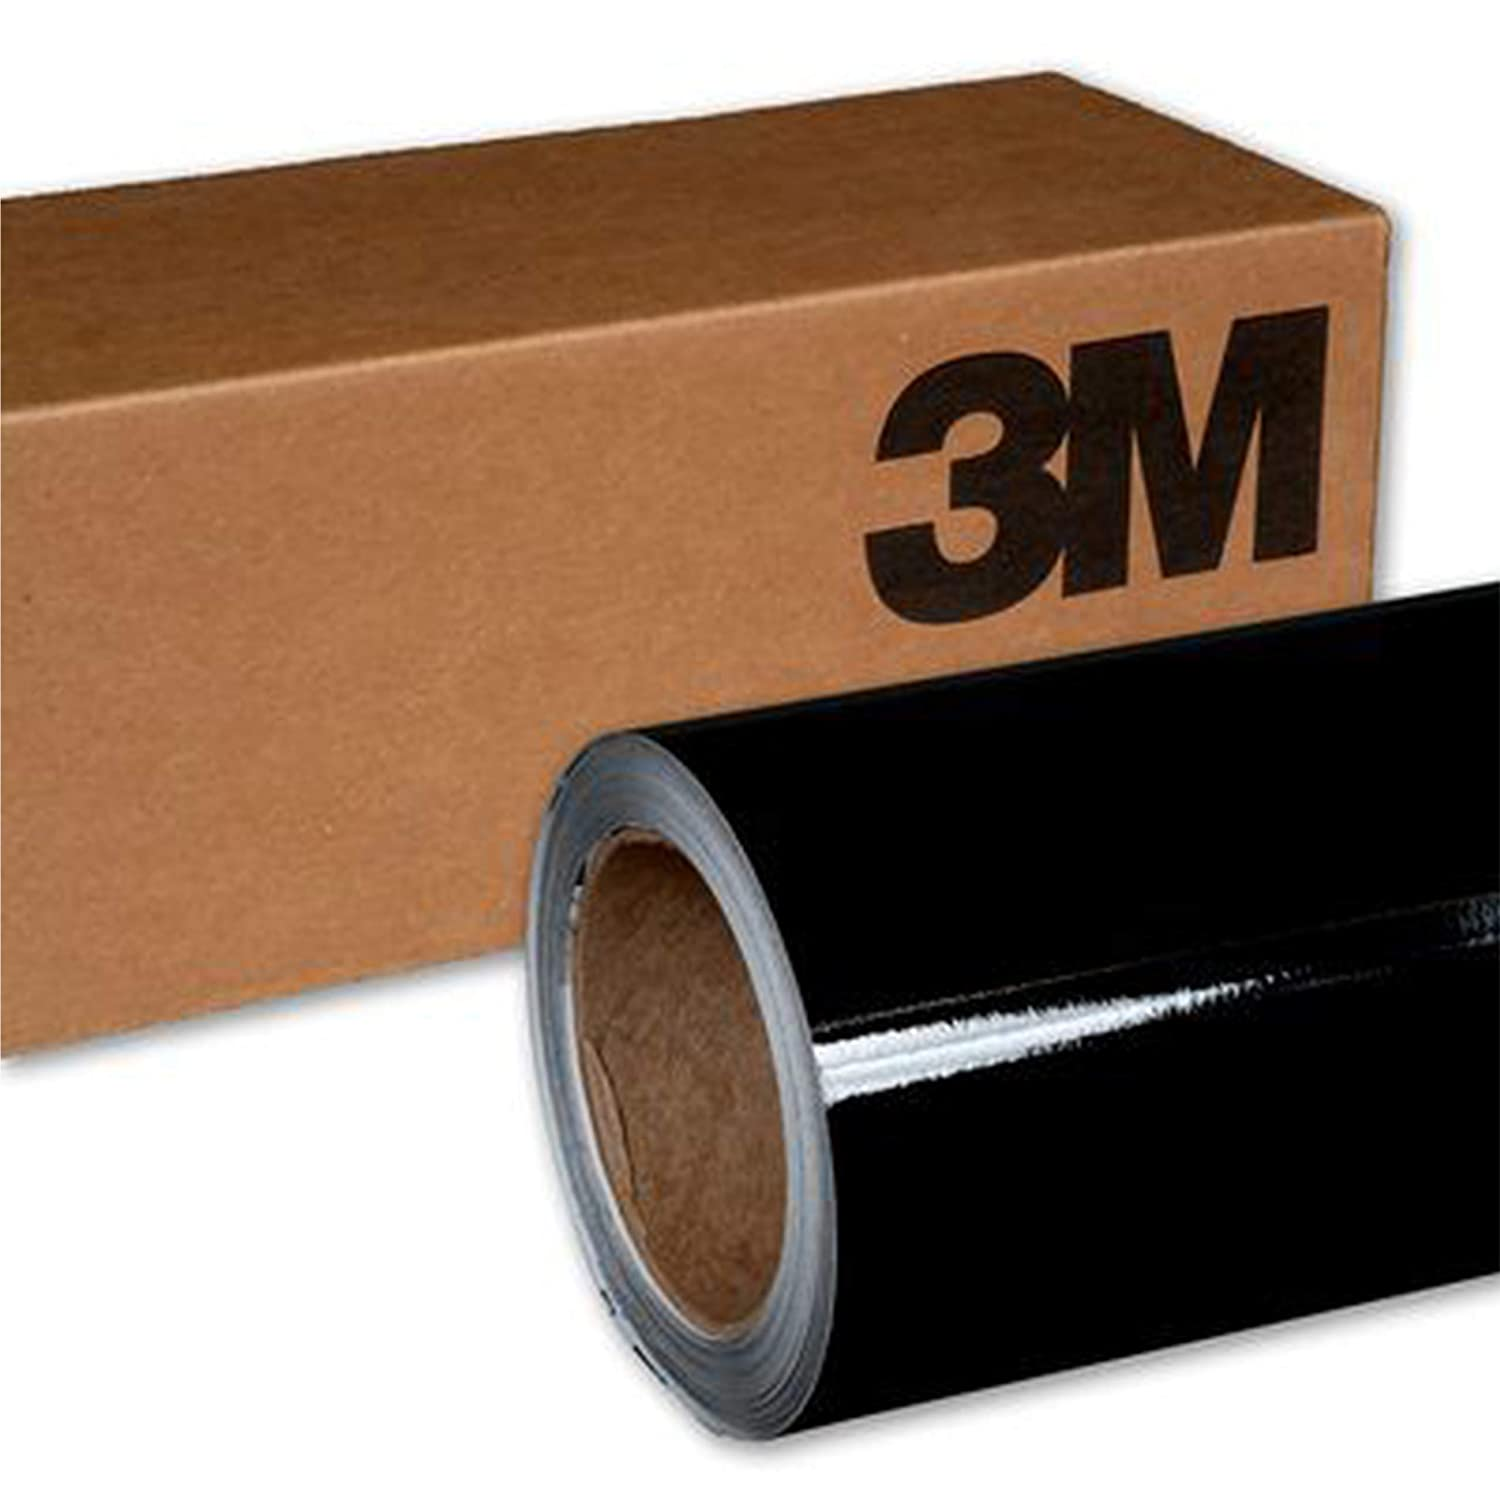 3M 1080 G12 GLOSS BLACK 3in x 5in (SAMPLE SIZE) Car Wrap Vinyl Film